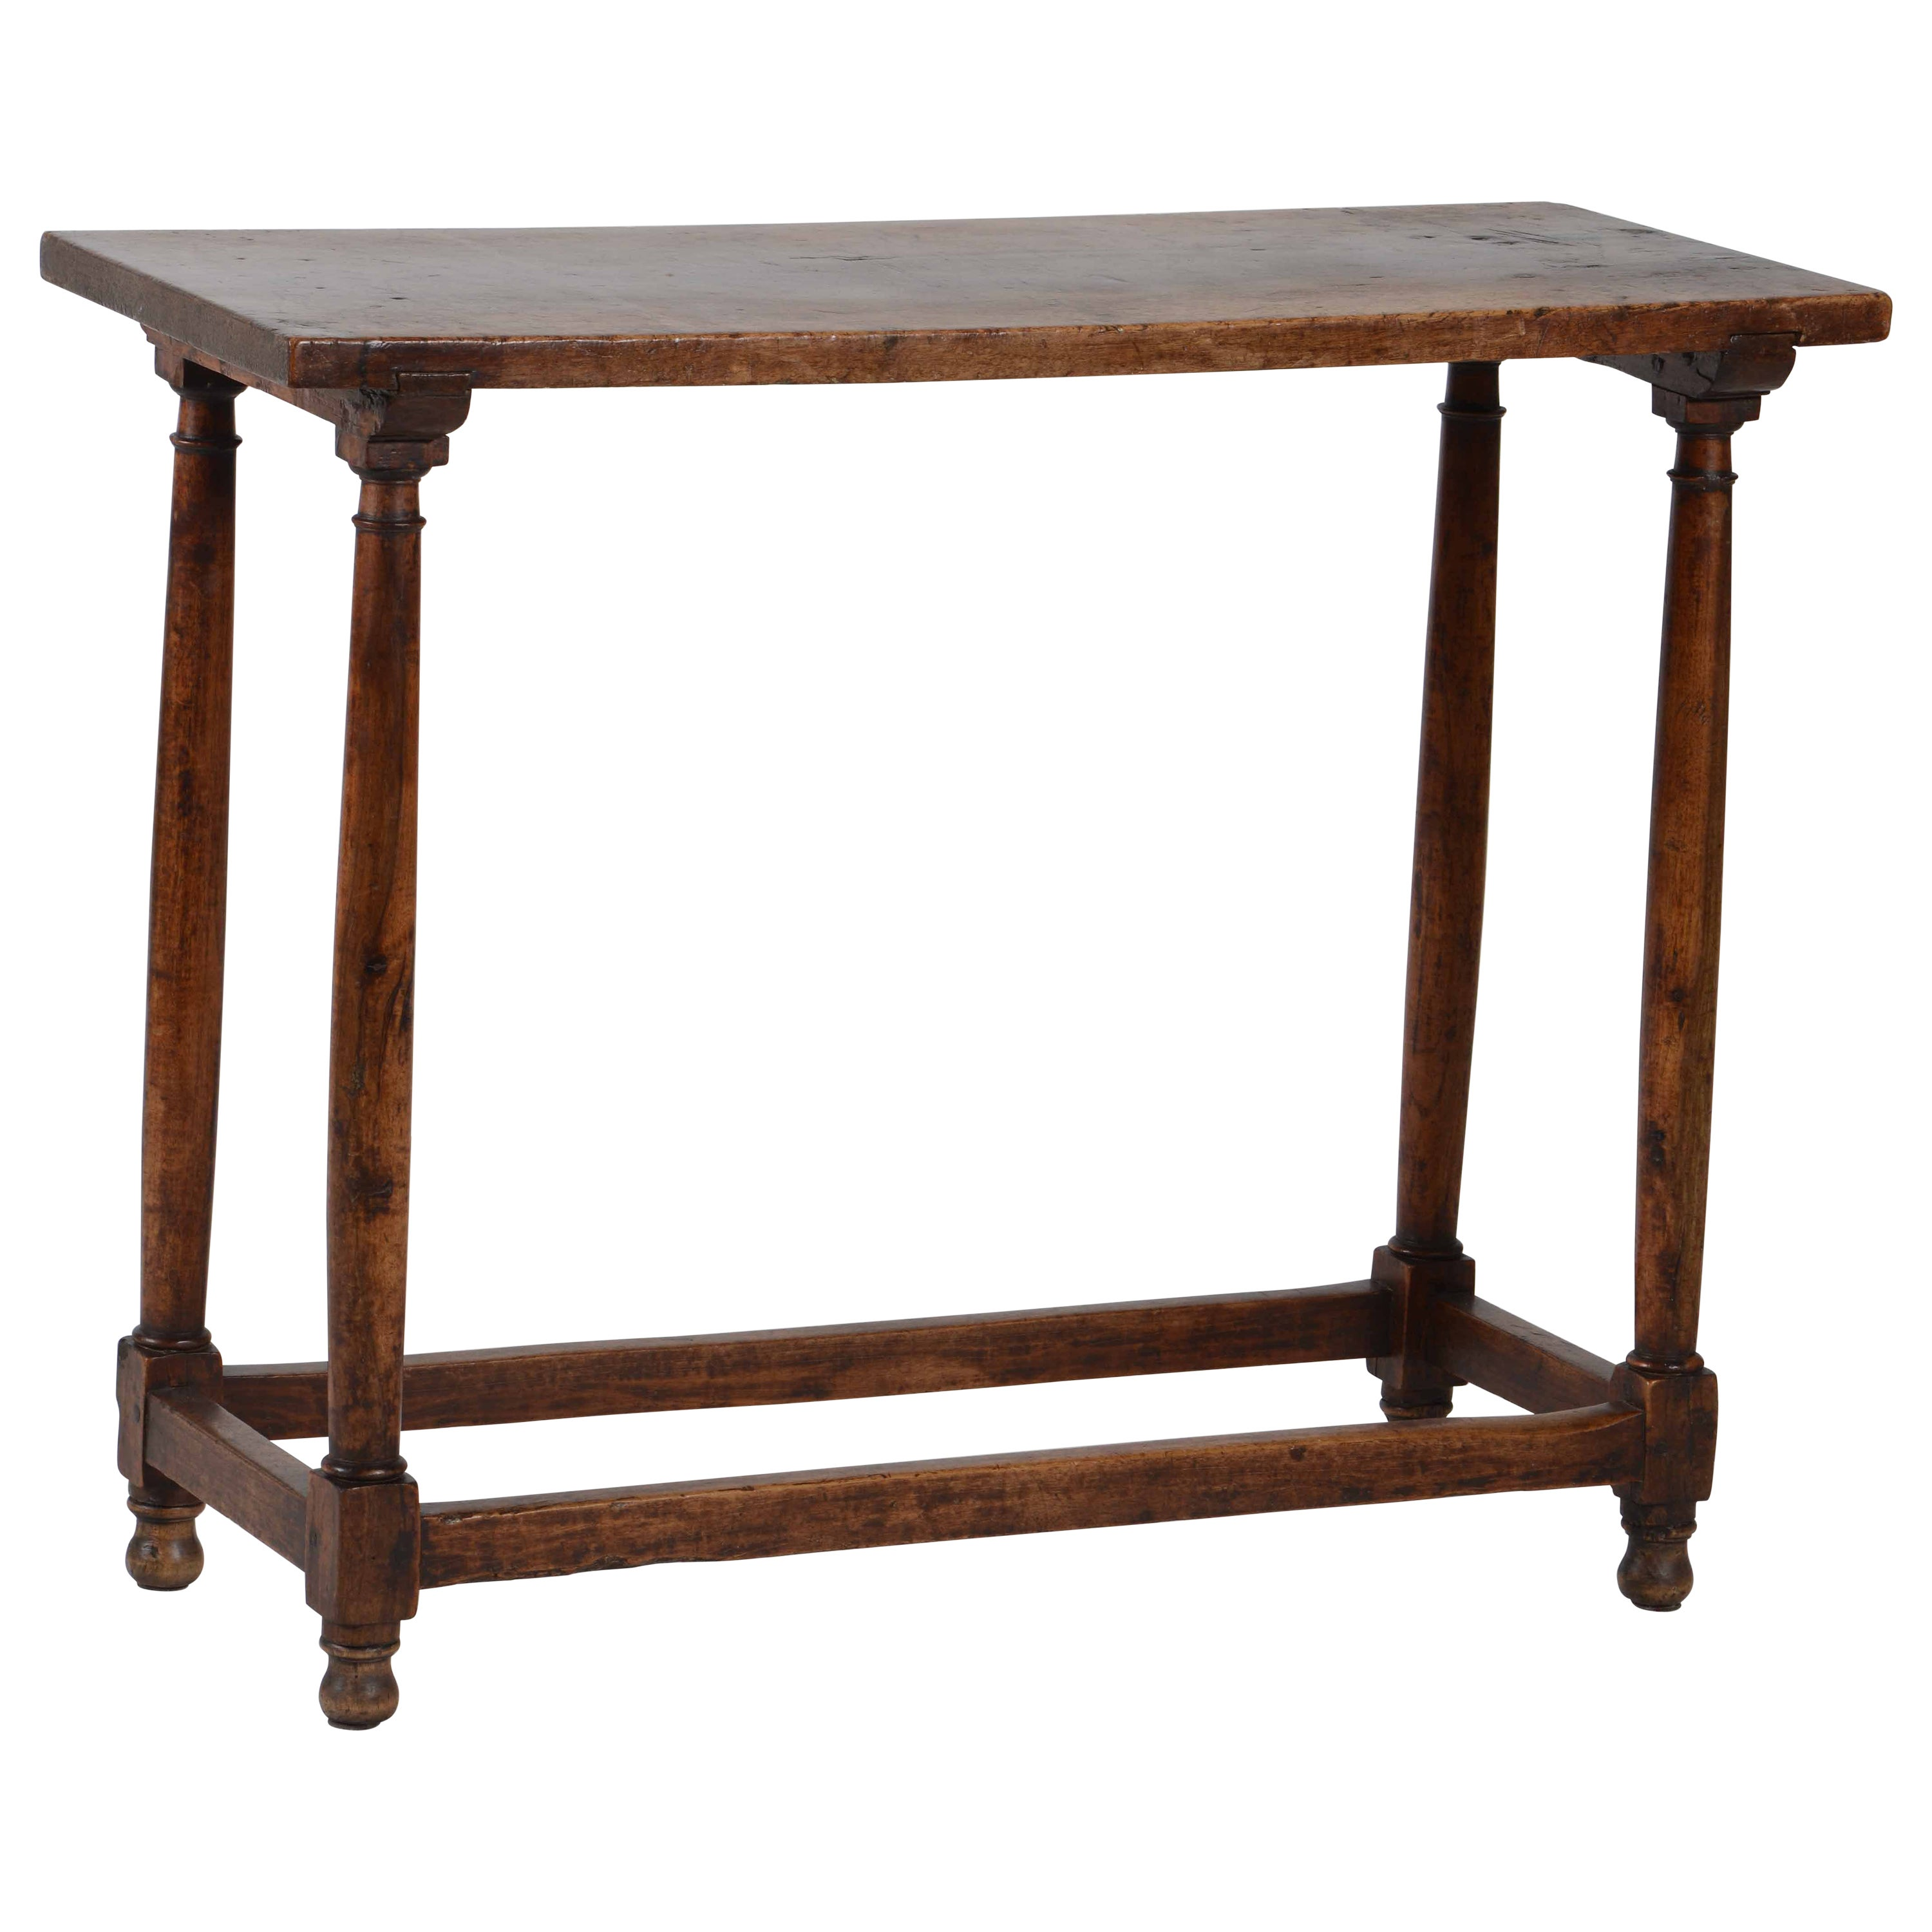 Minimal 17th Century Small Console Table in Walnut